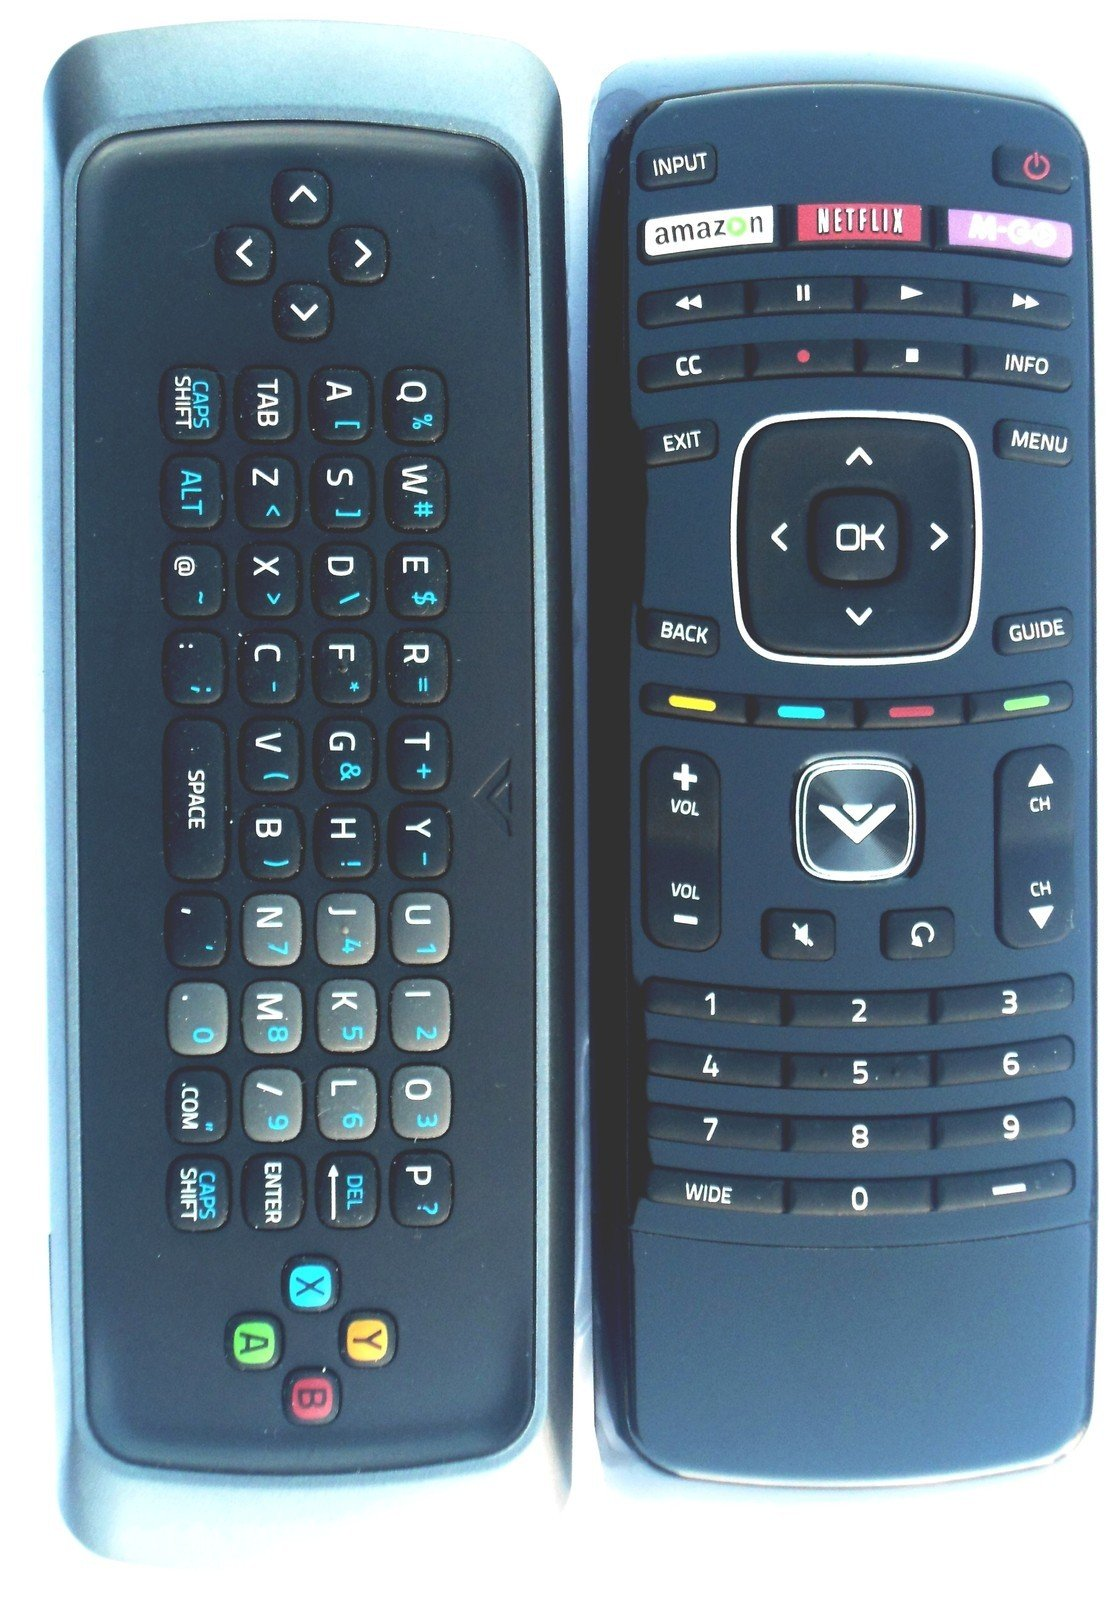 Control Remoto Dual Side Keyboard Internet for Vizio M420...